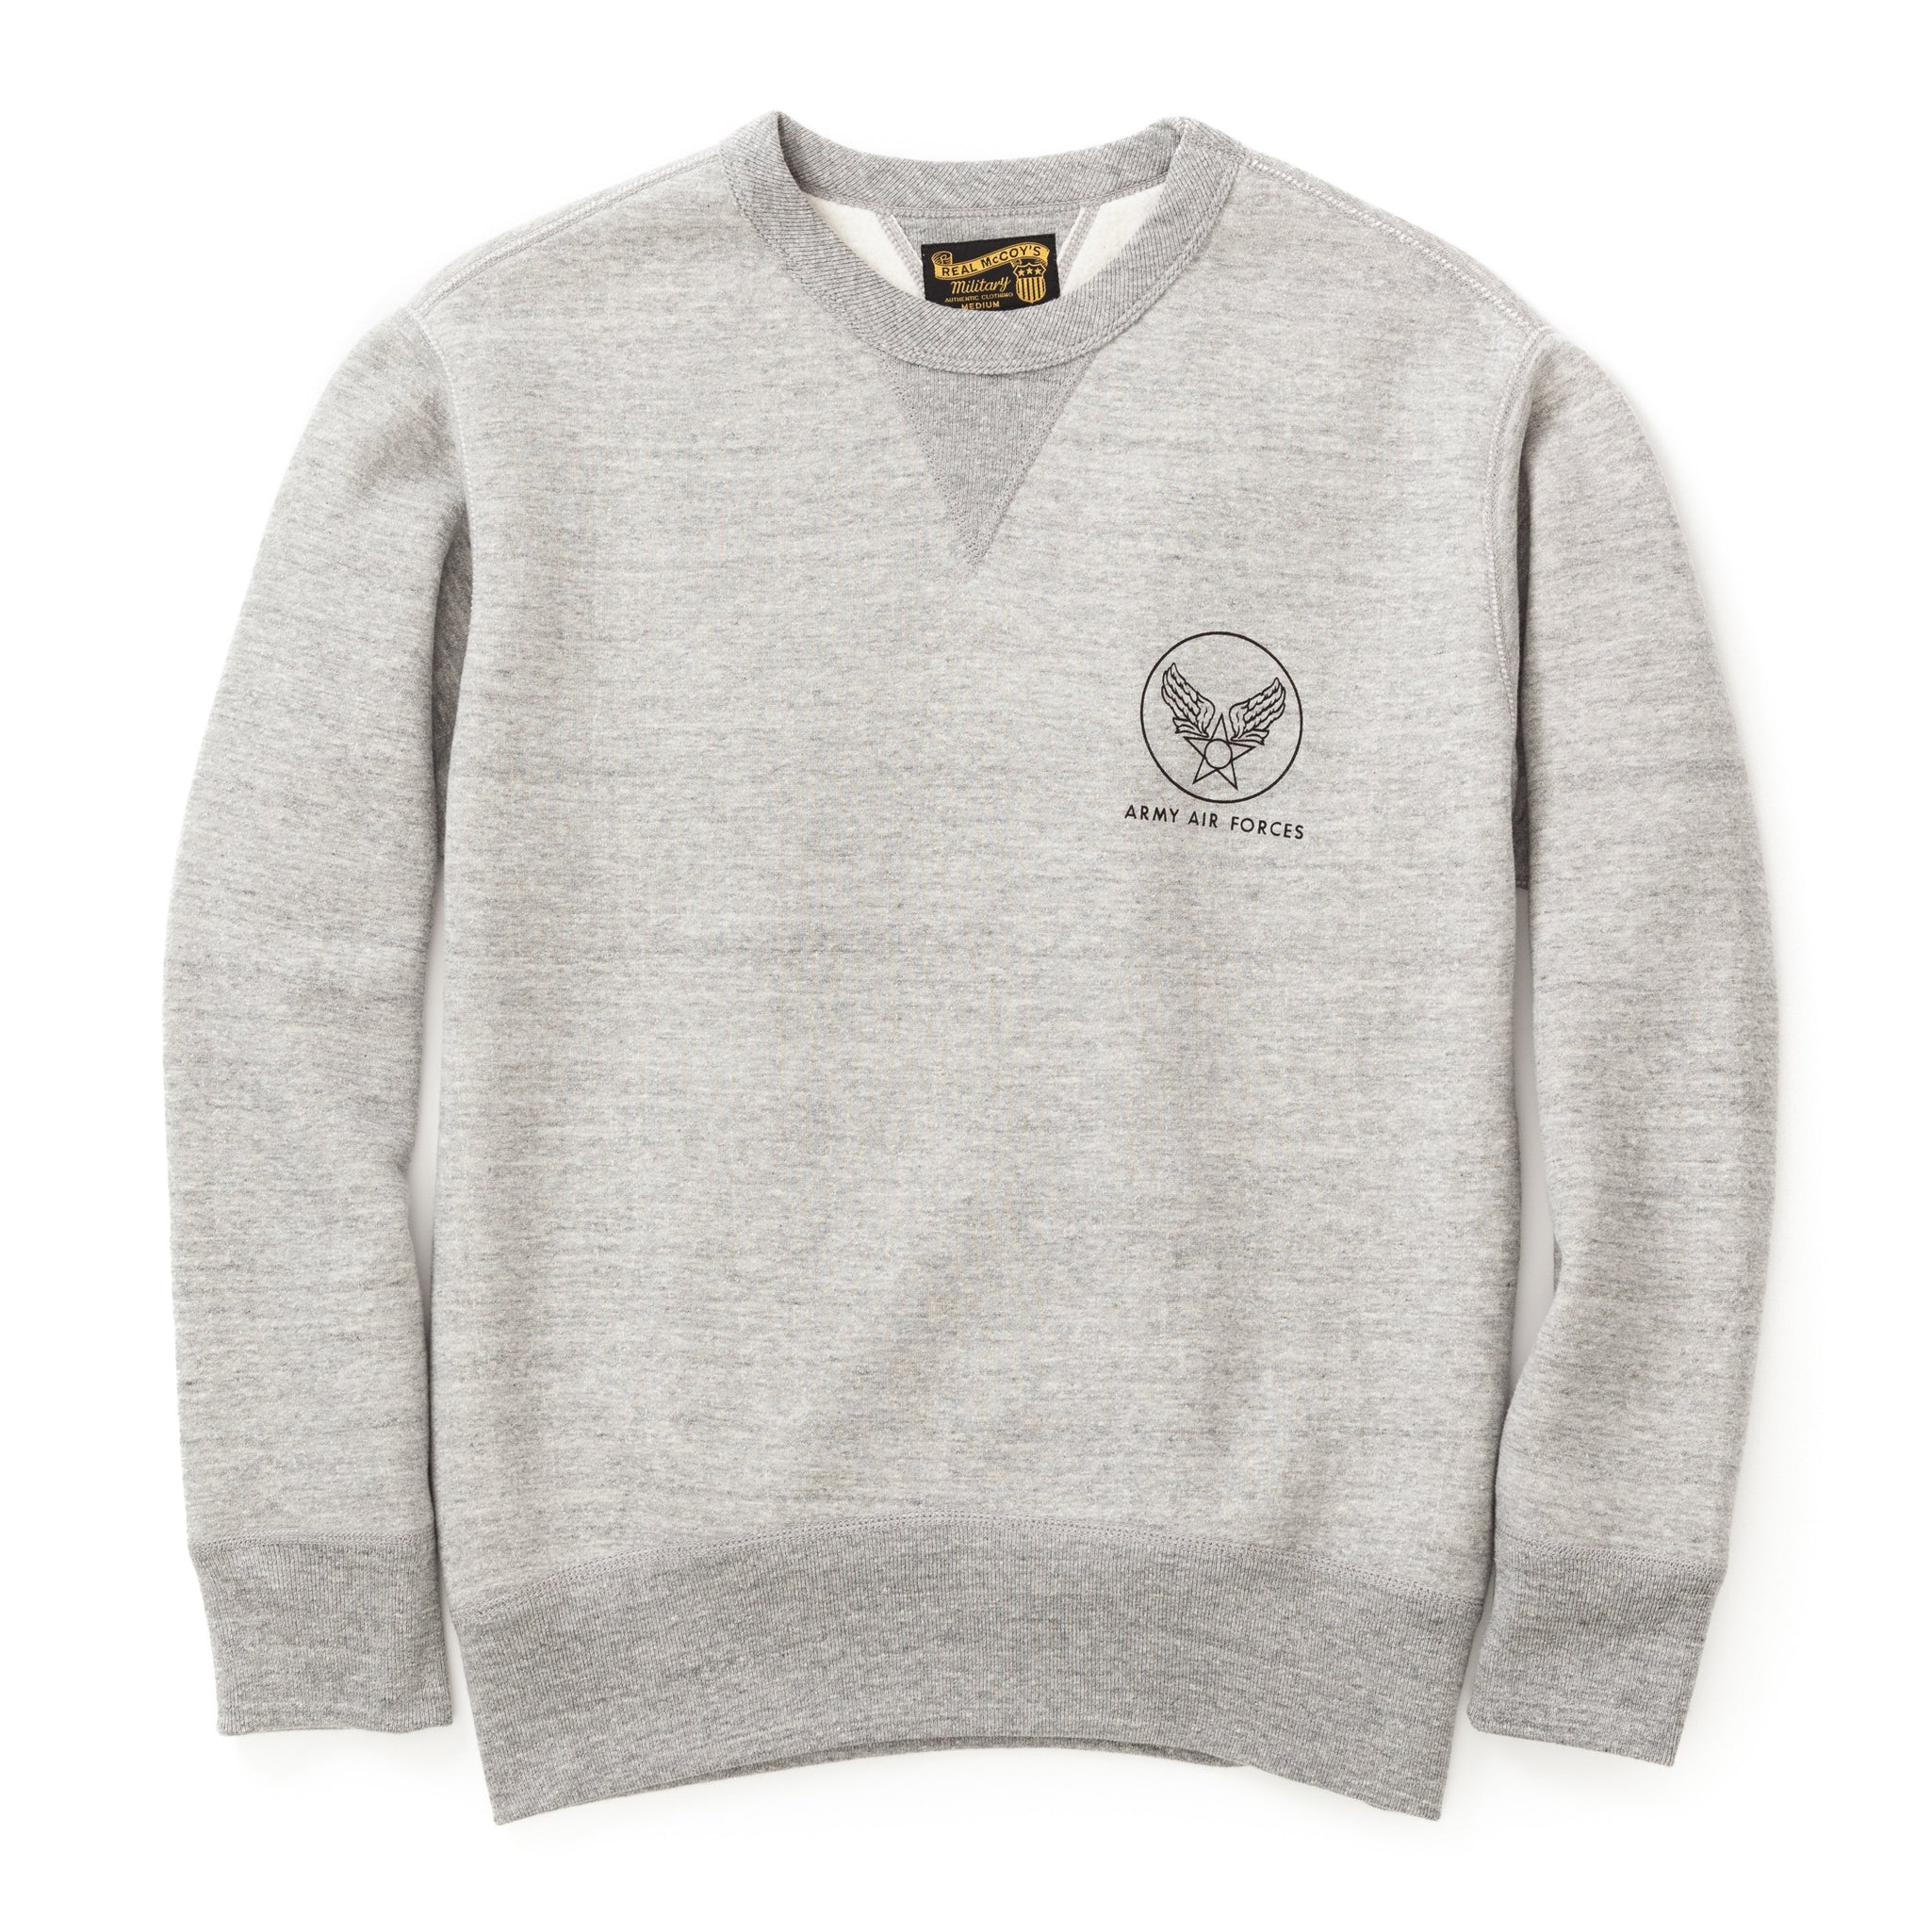 Army Air Force Sweatshirt